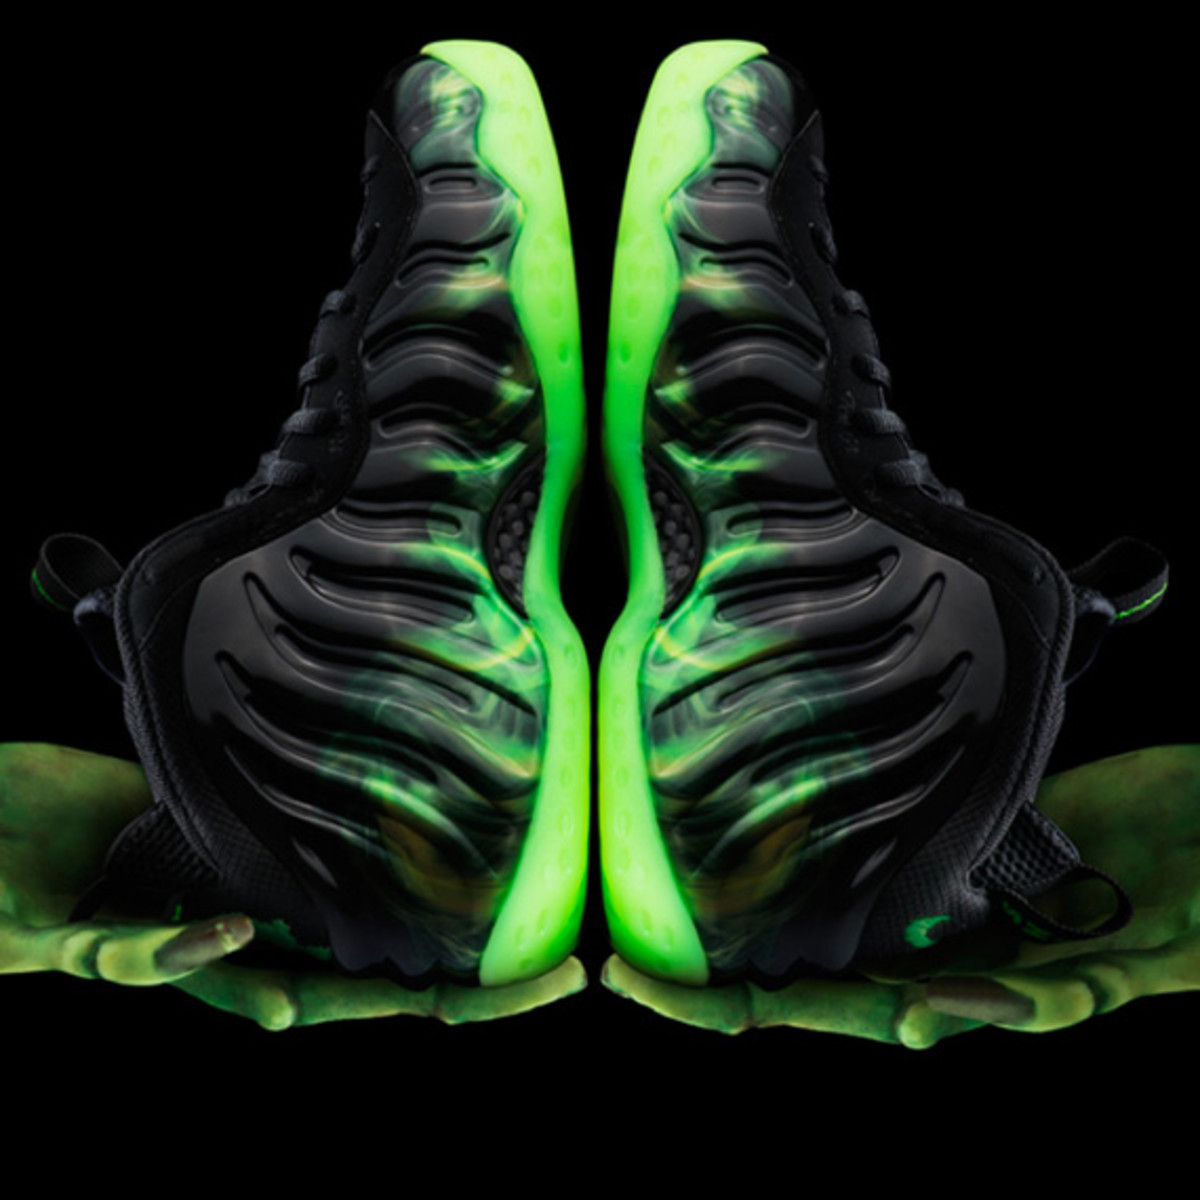 nike-air-foamposite-one-paranorman-07